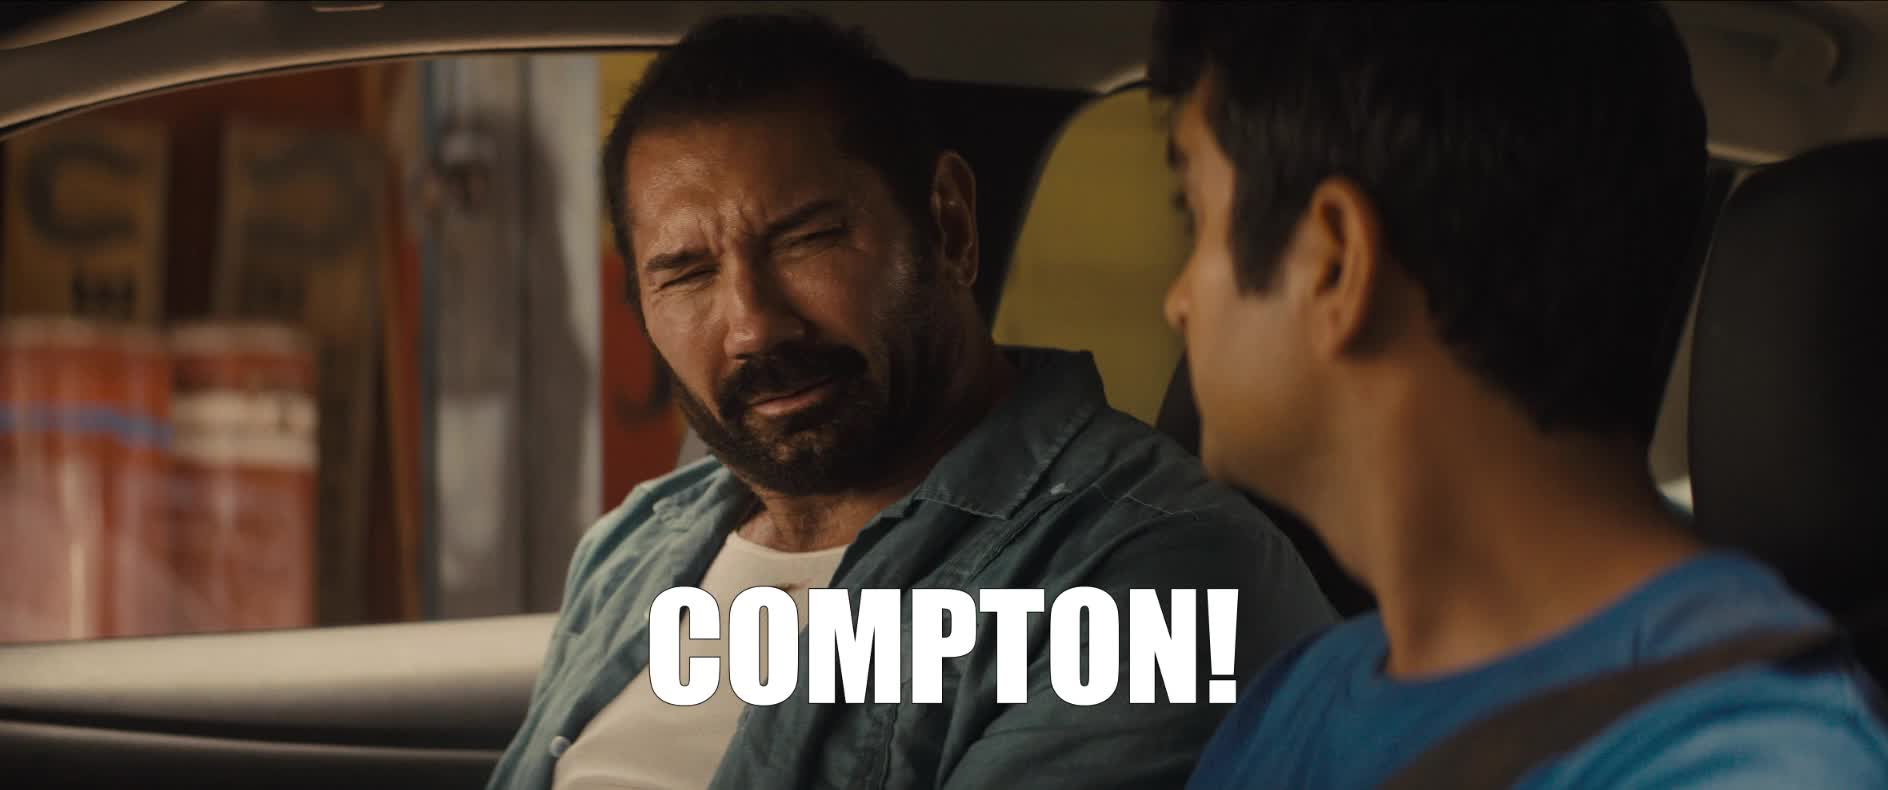 angry, compton, dave bautista, frustrated, mad, stuber, stuber movie, Dave Bautista Compton GIFs